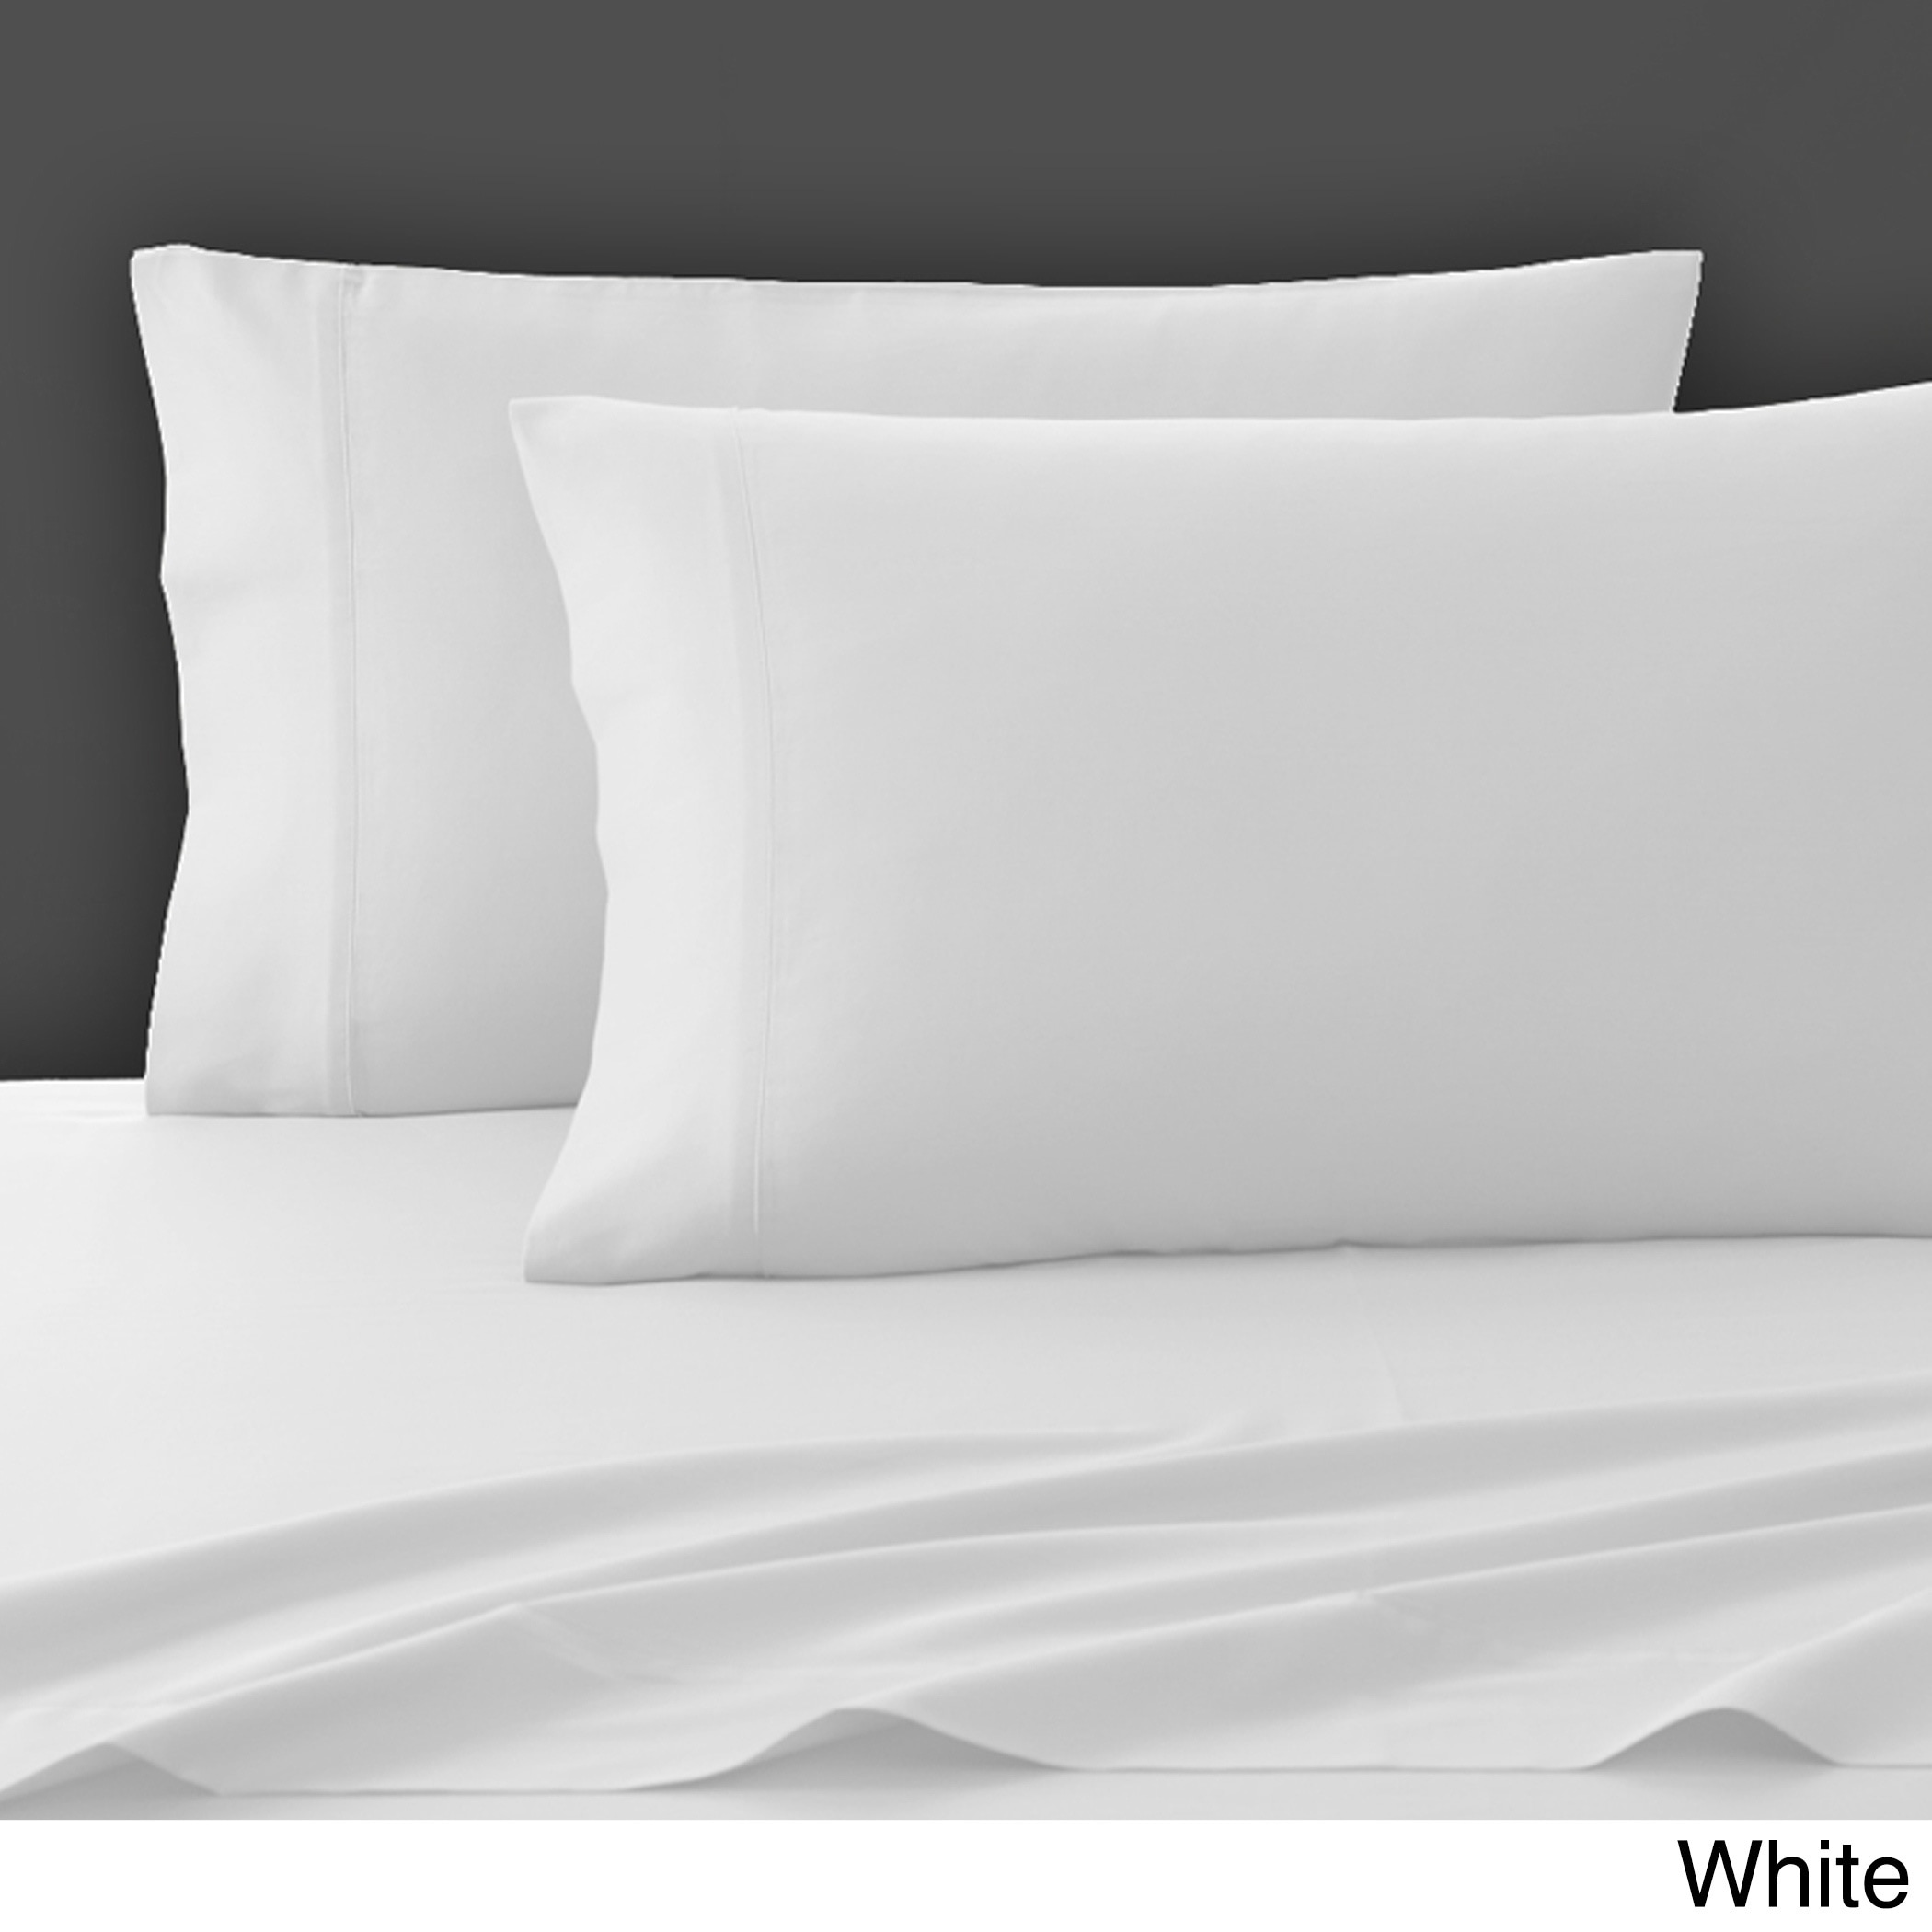 Solid Pattern Twin Size Top Sheet Flows Linen One Piece Flat Sheet Superior Ultra Soft Quality Egyptian Cotton 600 Thread Count { 1-PC } Flat Sheet Black